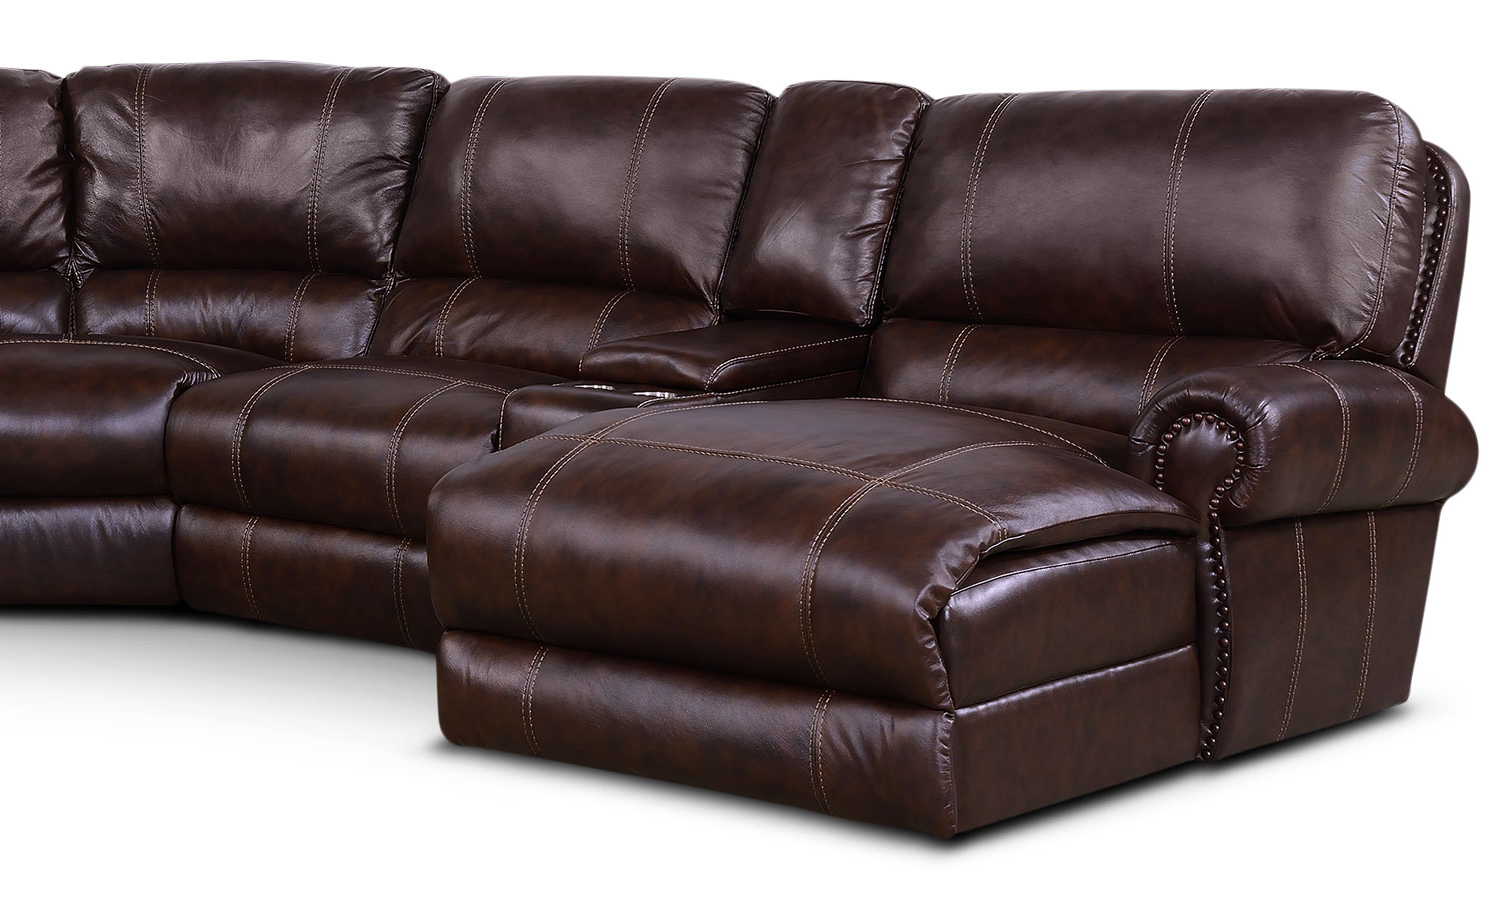 Dartmouth 6 Piece Power Reclining Sectional With 2 Reclining Seats Within 2018 Norfolk Chocolate 6 Piece Sectionals (Gallery 7 of 20)